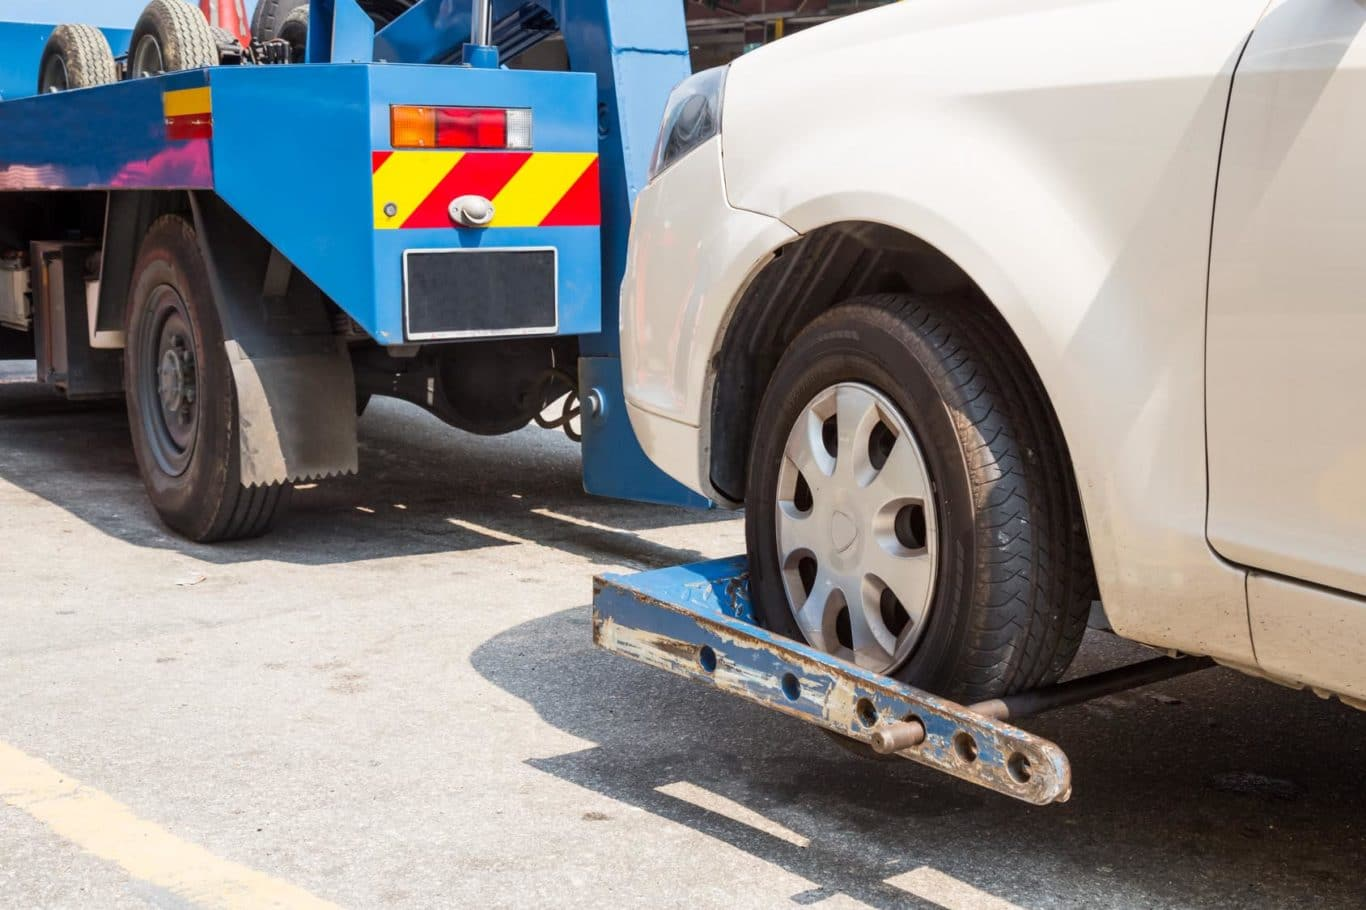 Hollywood, County Wicklow expert Car Towing services